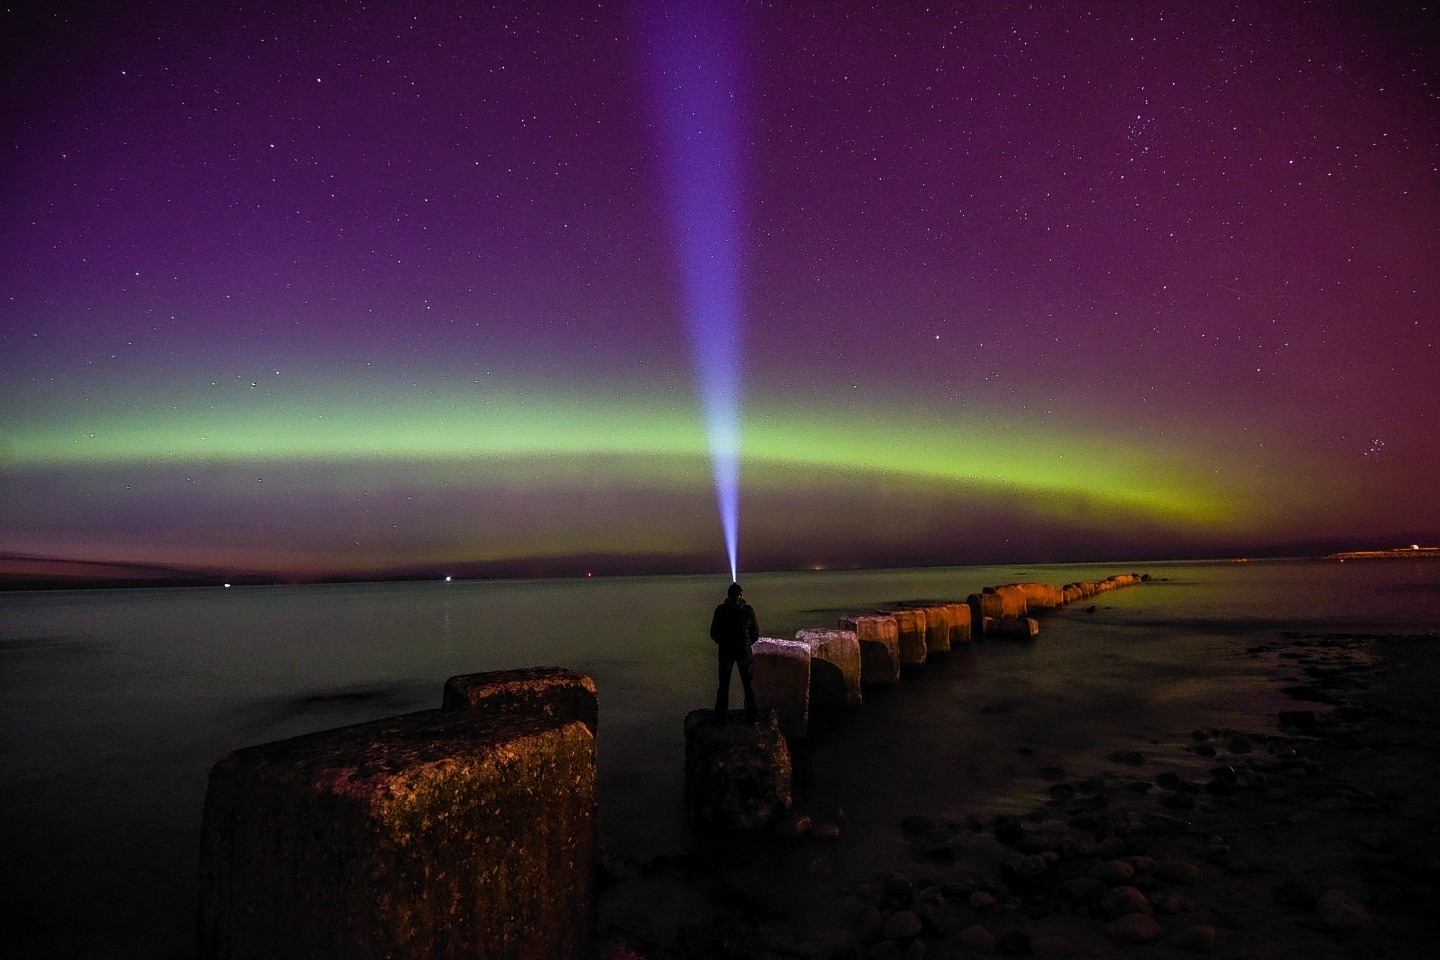 A man wearing a headtorch looks out towards the Aurora Borealis in Lossiemouth, Moray